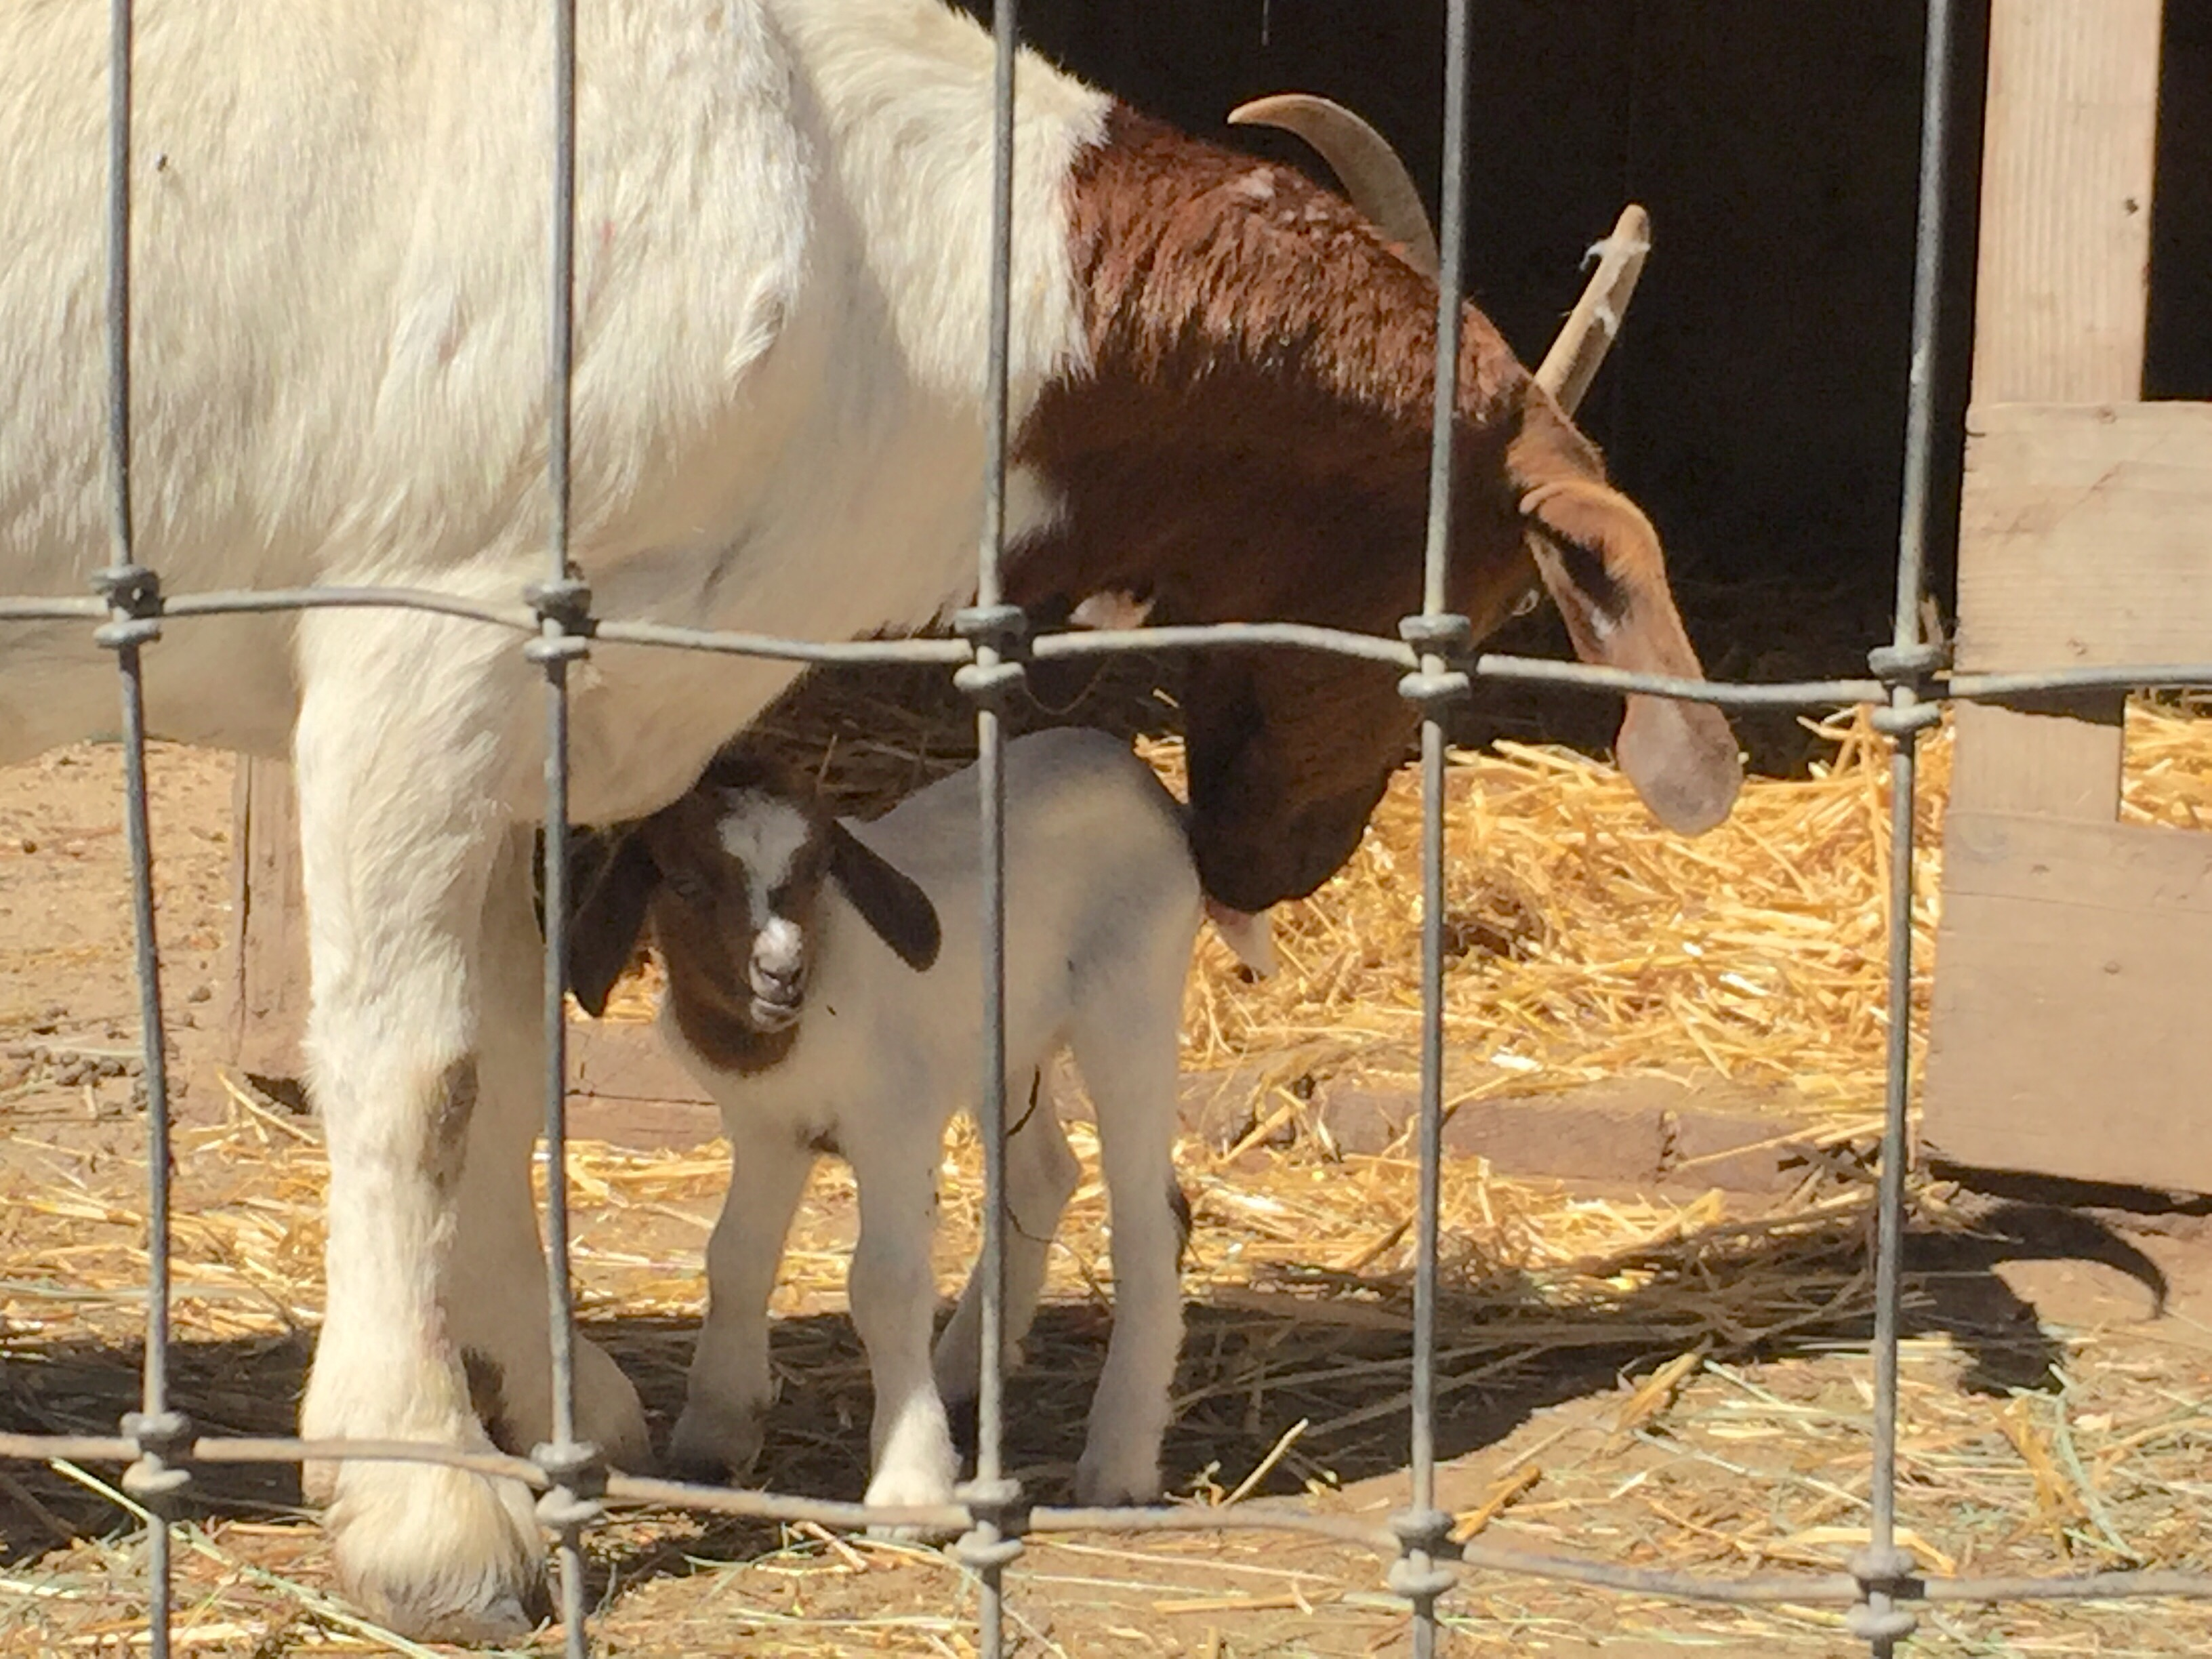 Newborn baby goat nuzzles with its mother at Avila Valley Barn in San Luis Obispo.